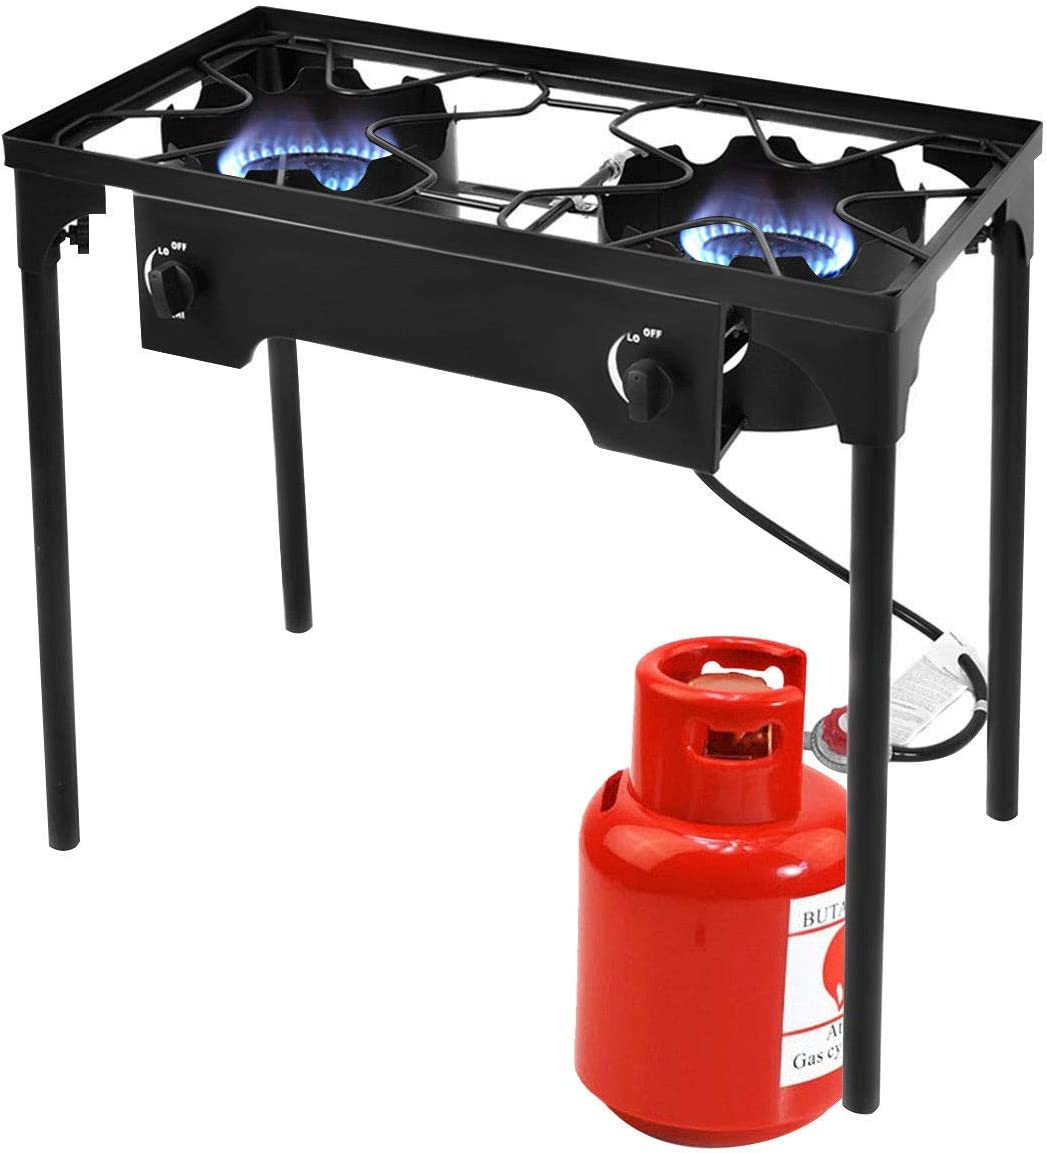 VeenShop You Should Have Double Burner Gas Propano Cooker ...